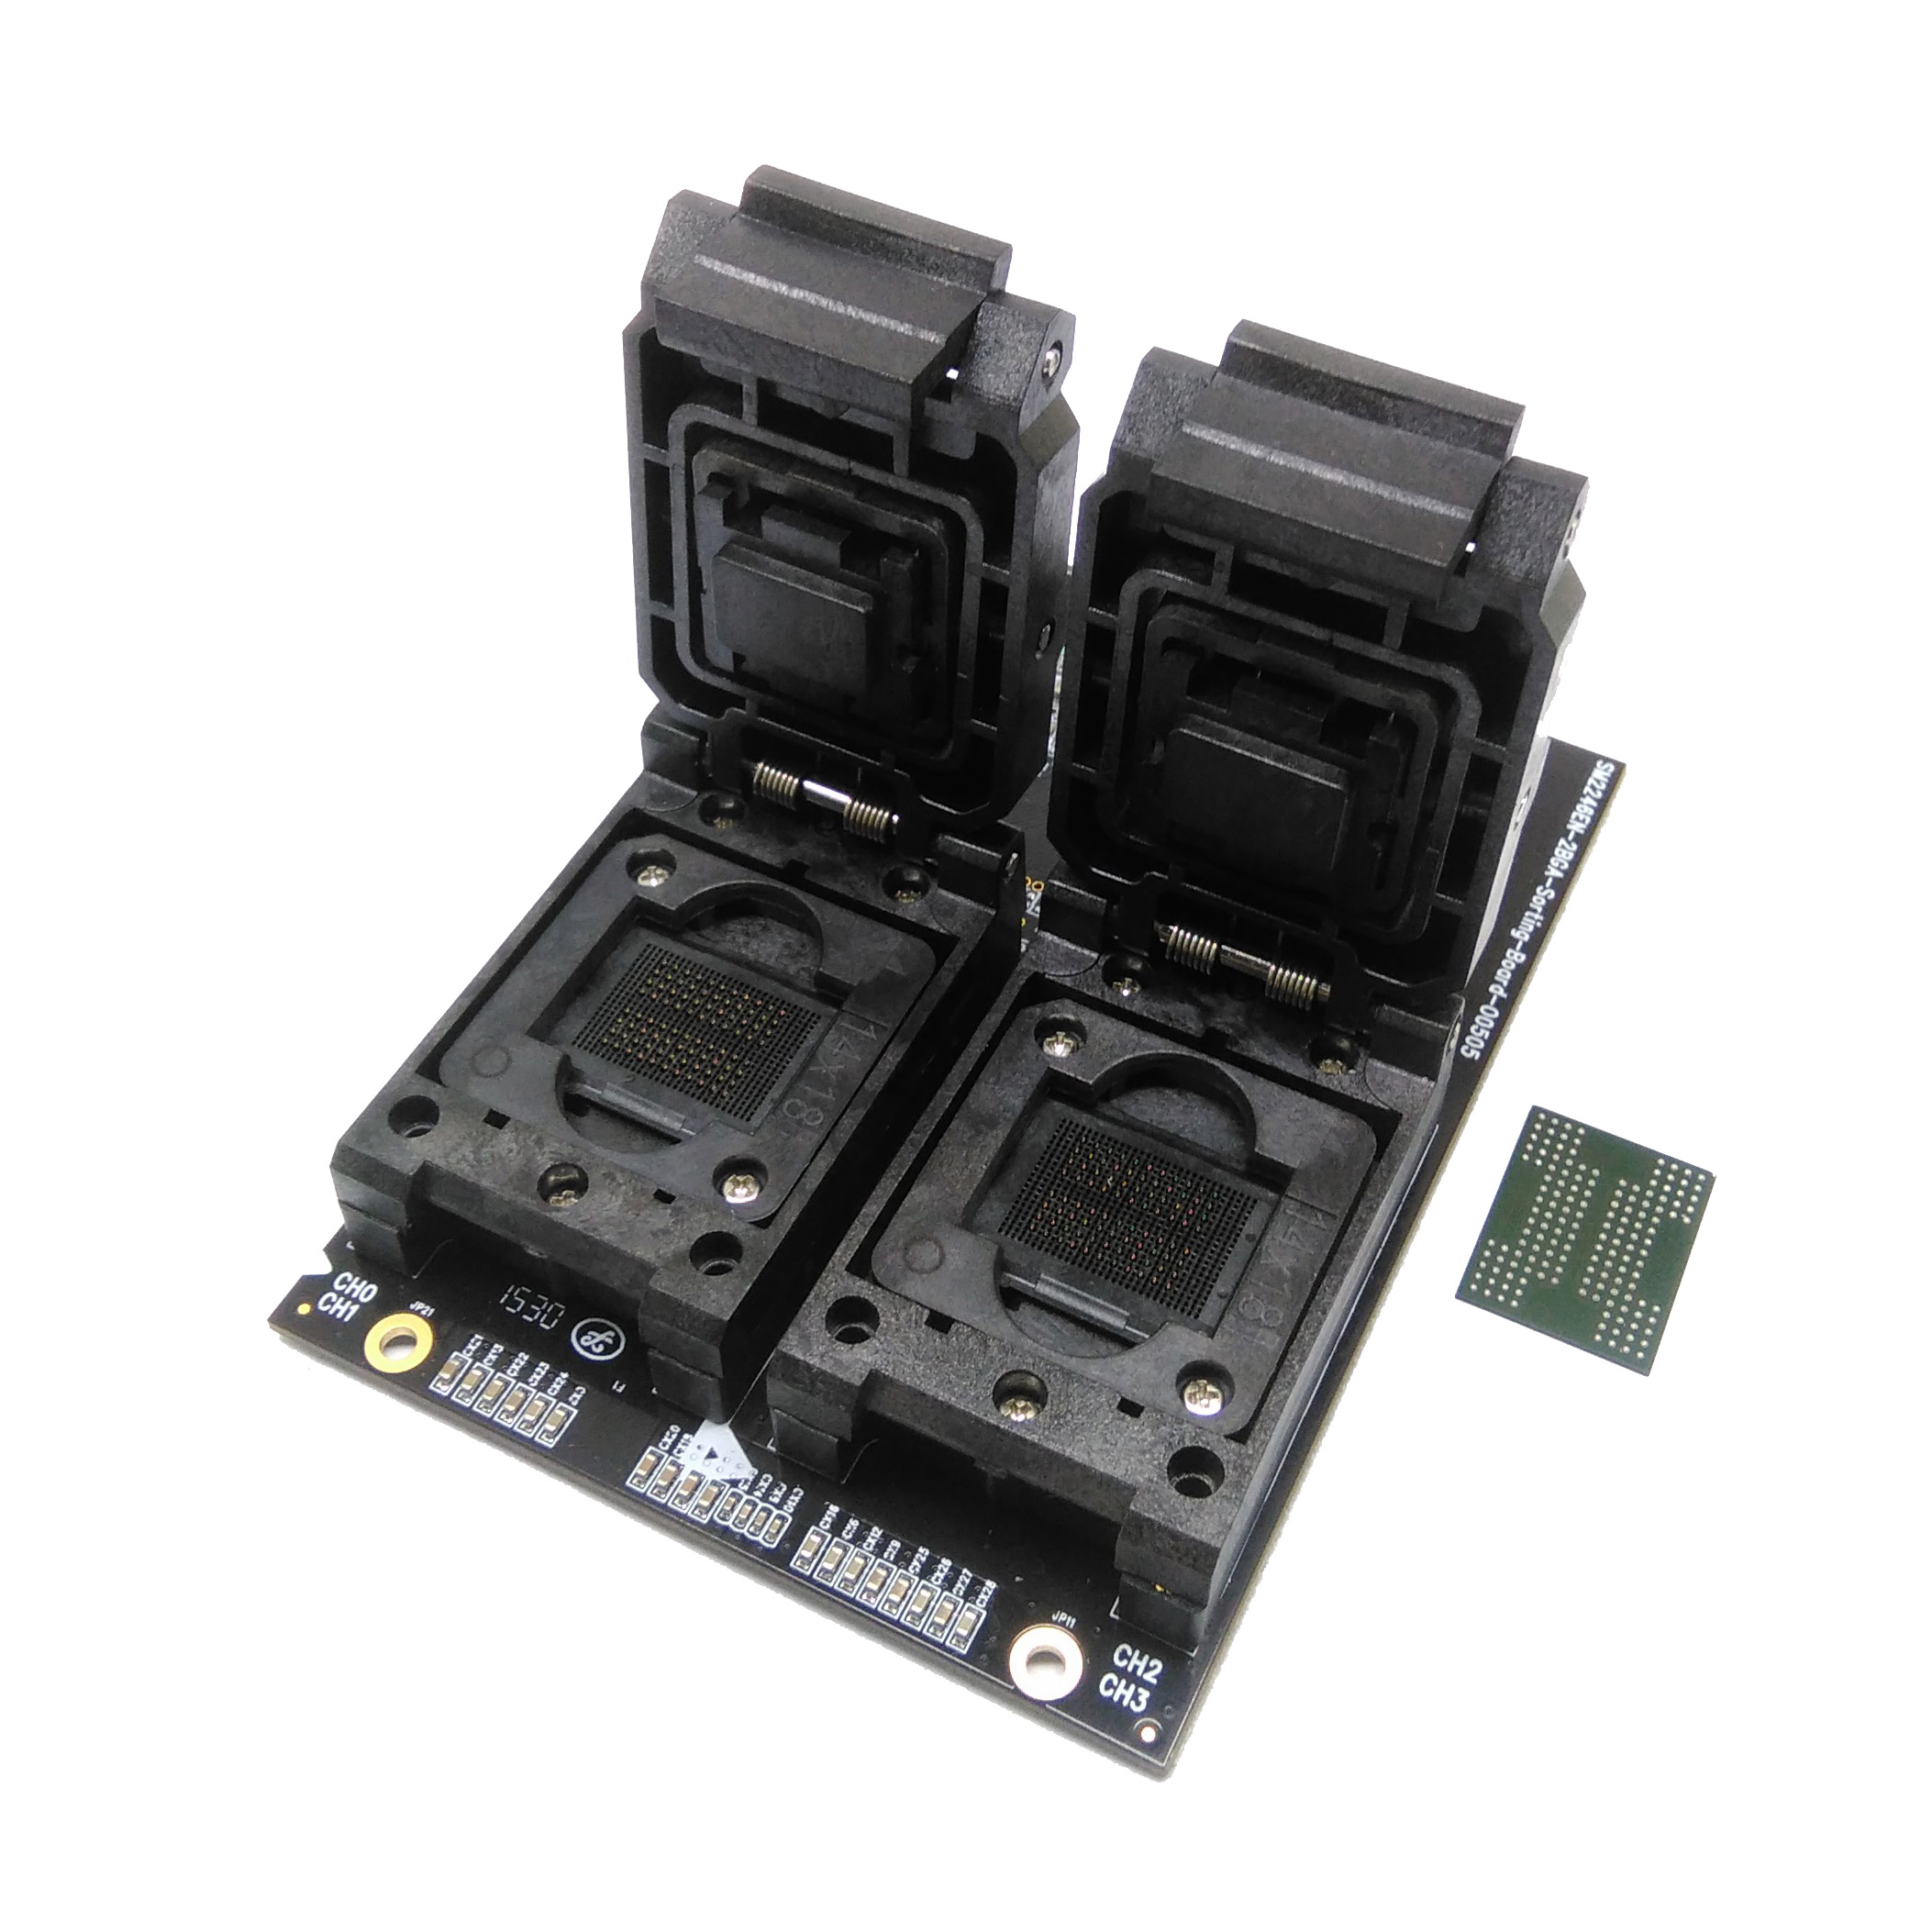 New Arrival BGA152 BGA132 Test Socket Clamshell Structure Jig SSD Interface Socket Fixture Excellent Quality